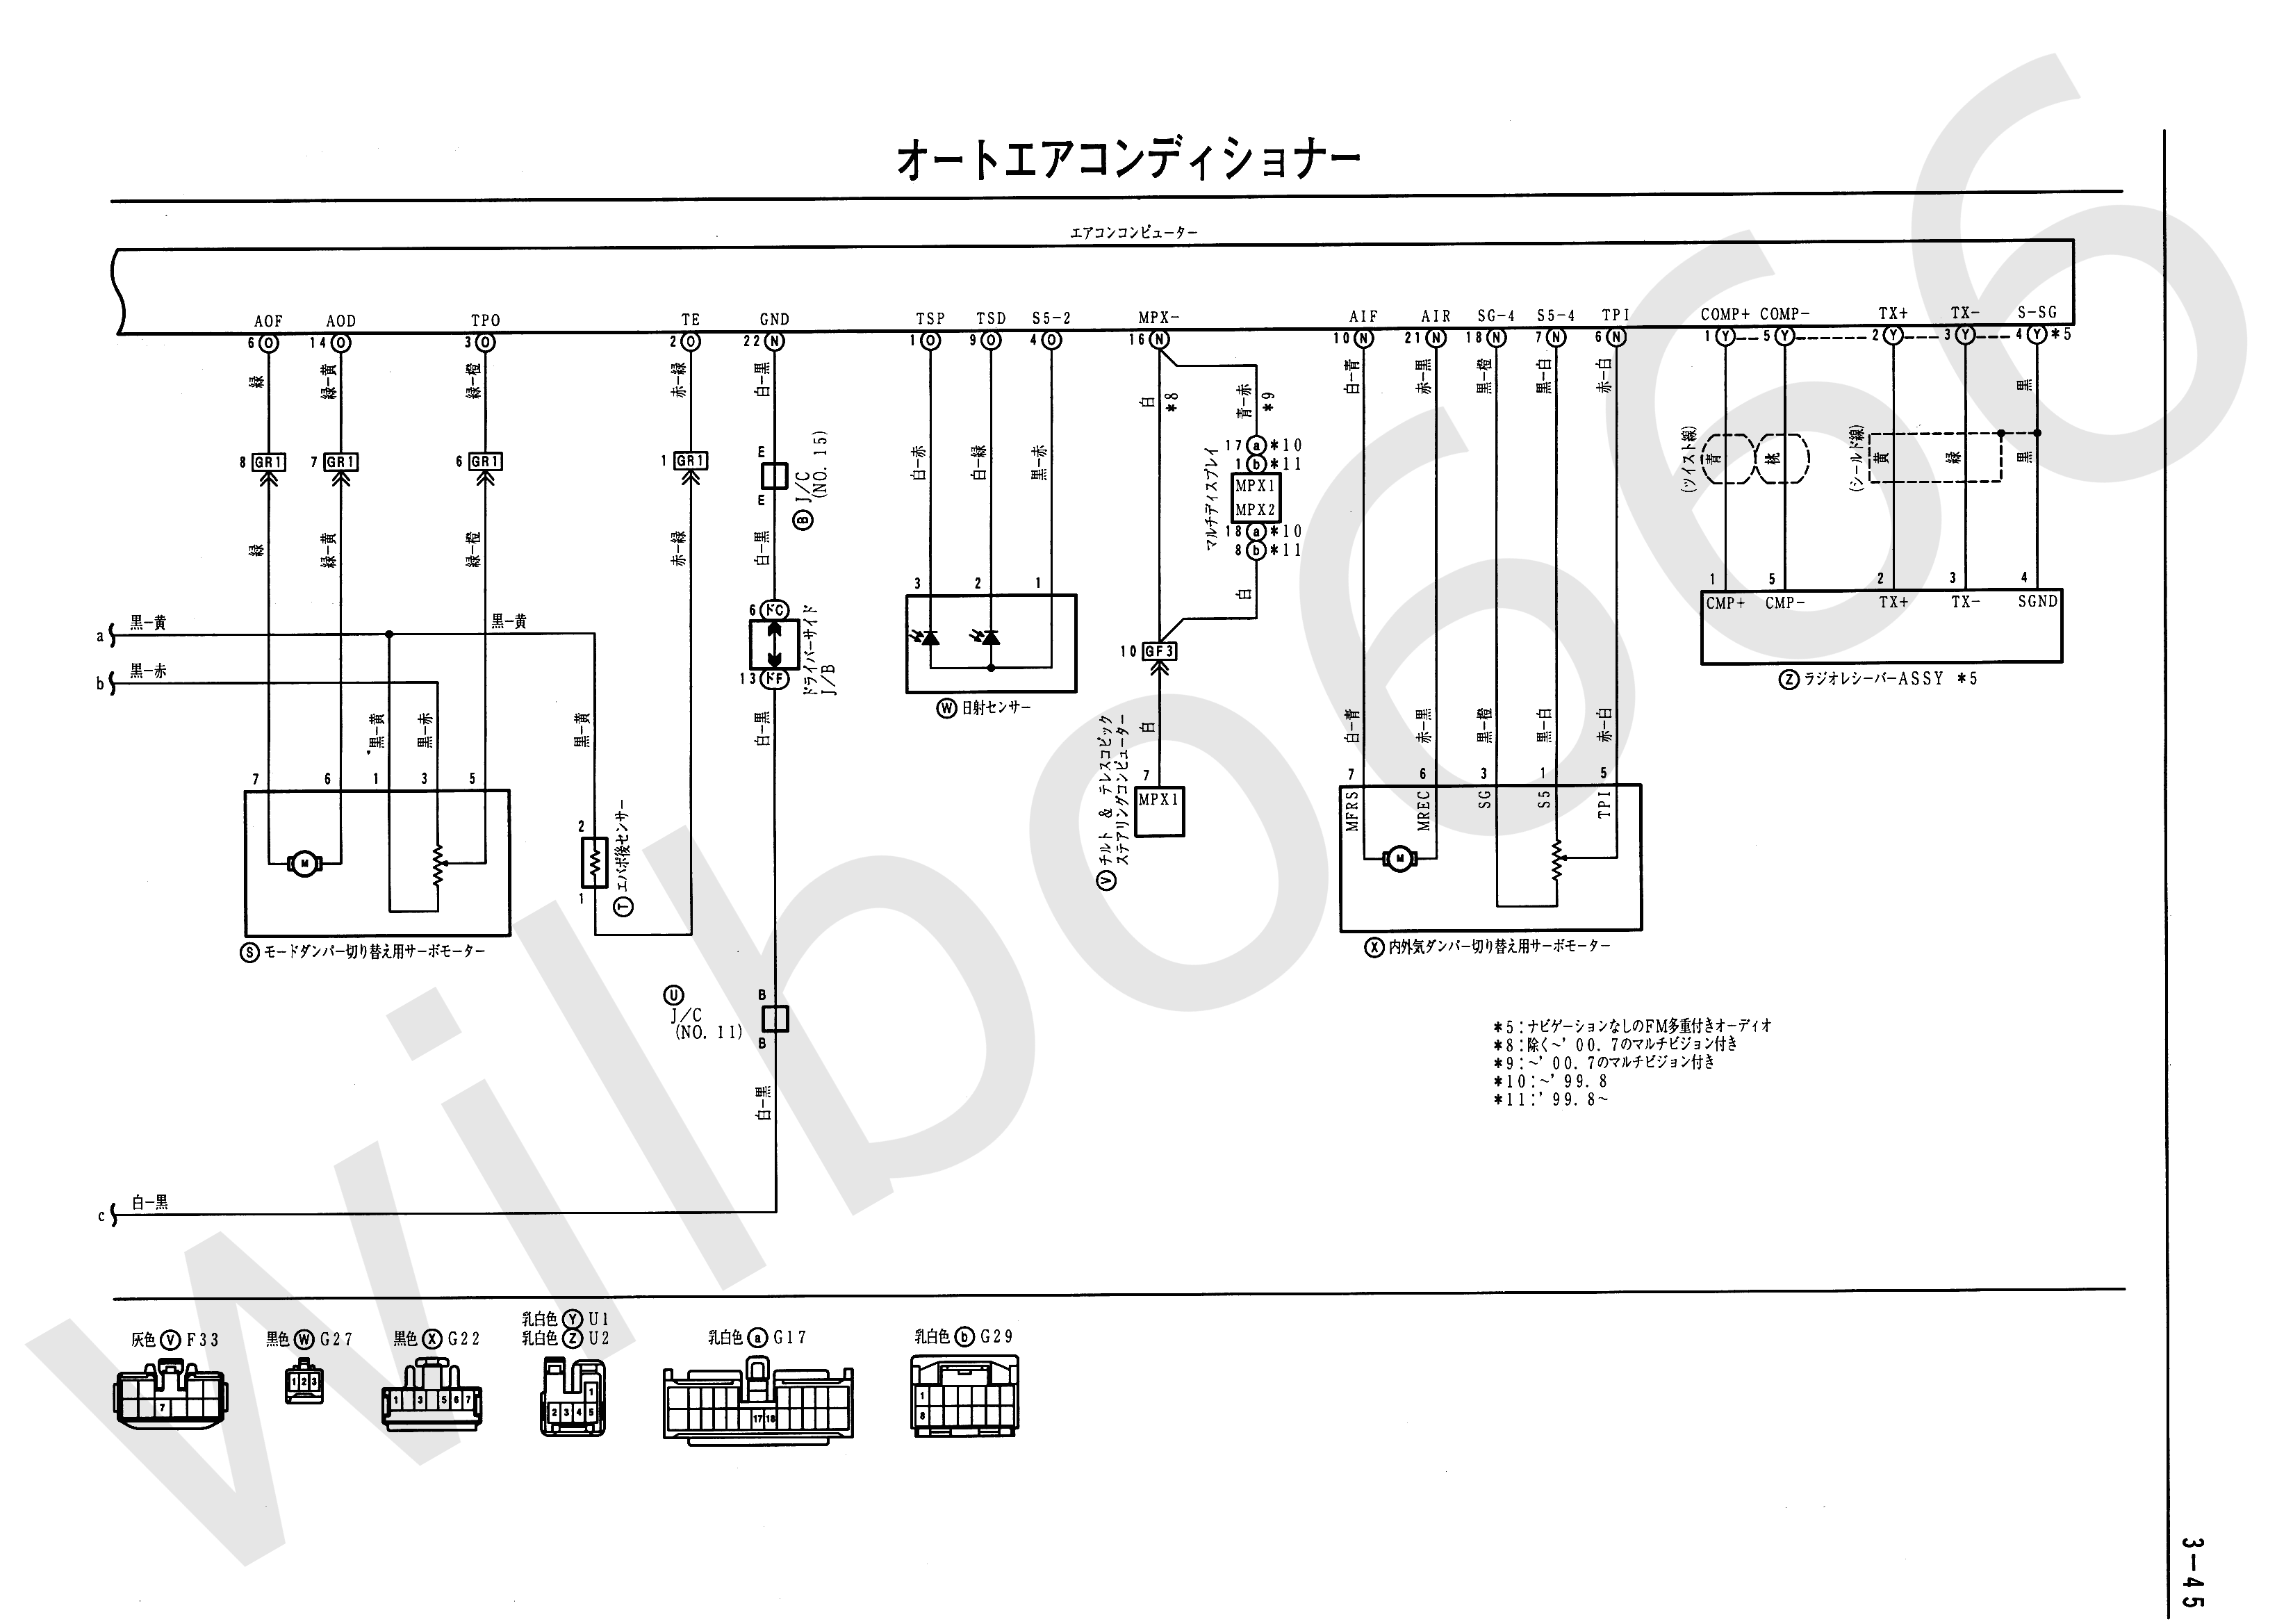 JZS161 Electrical Wiring Diagram 6748505 3 45?resize\\=3300%2C2337 rough house 50cc scooter wiring diagram kymco scooter parts 50Cc Scooter Stator Wiring Diagram at n-0.co